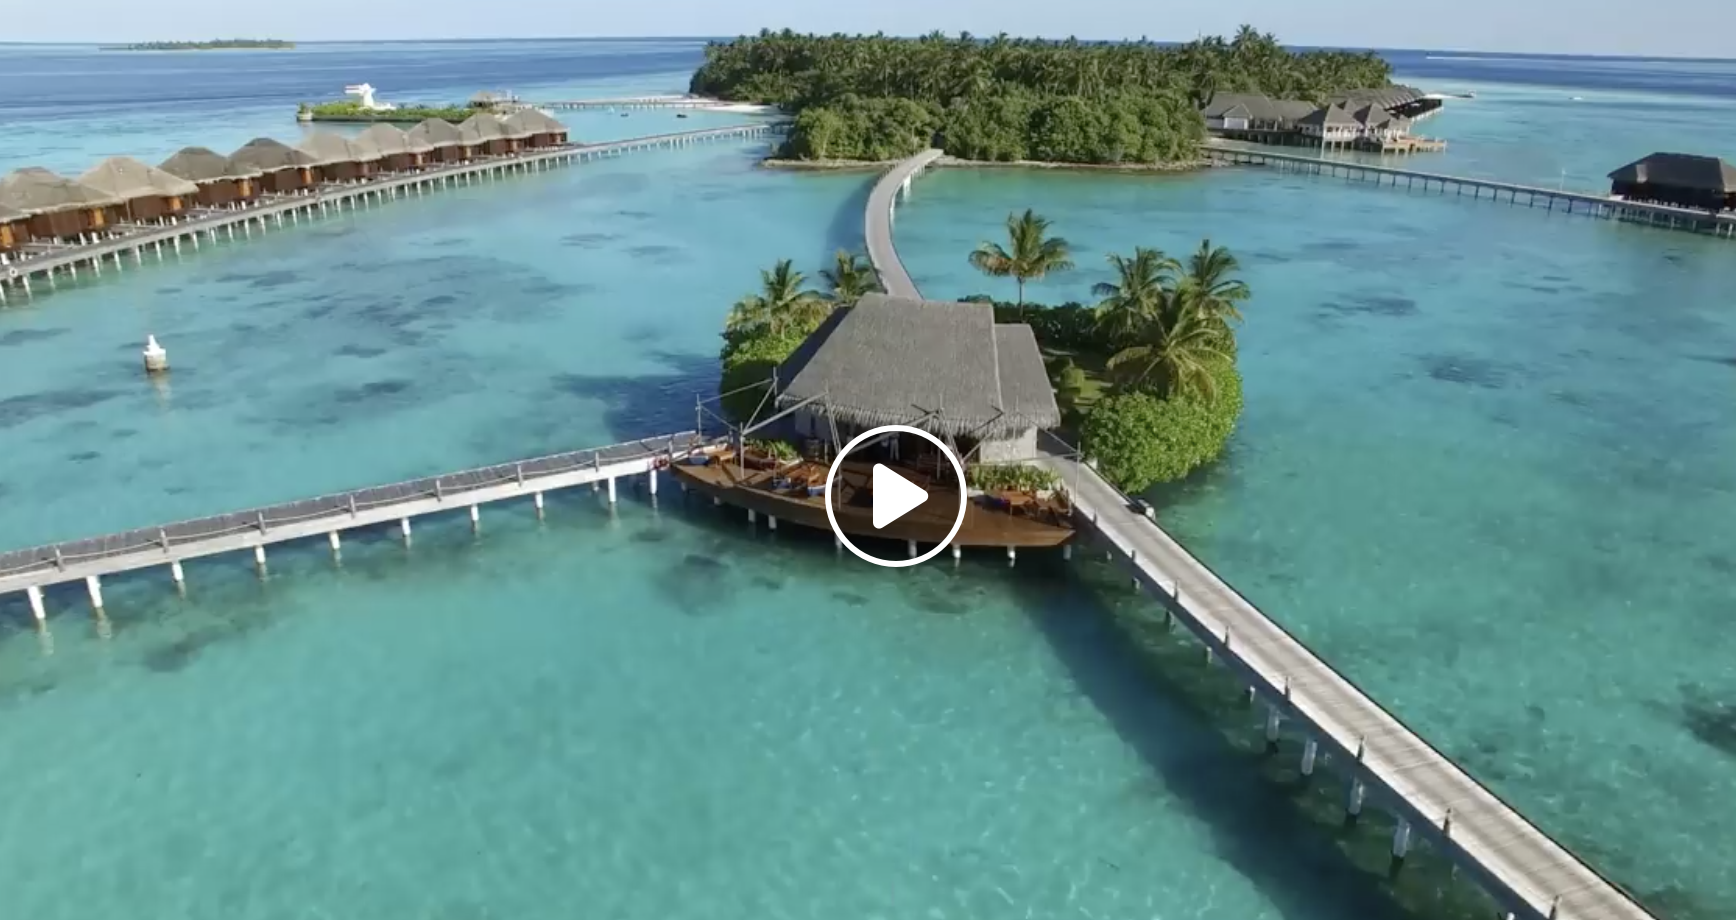 Holiday Hideaway – Imagine waking up every day to this view – Bora Bora